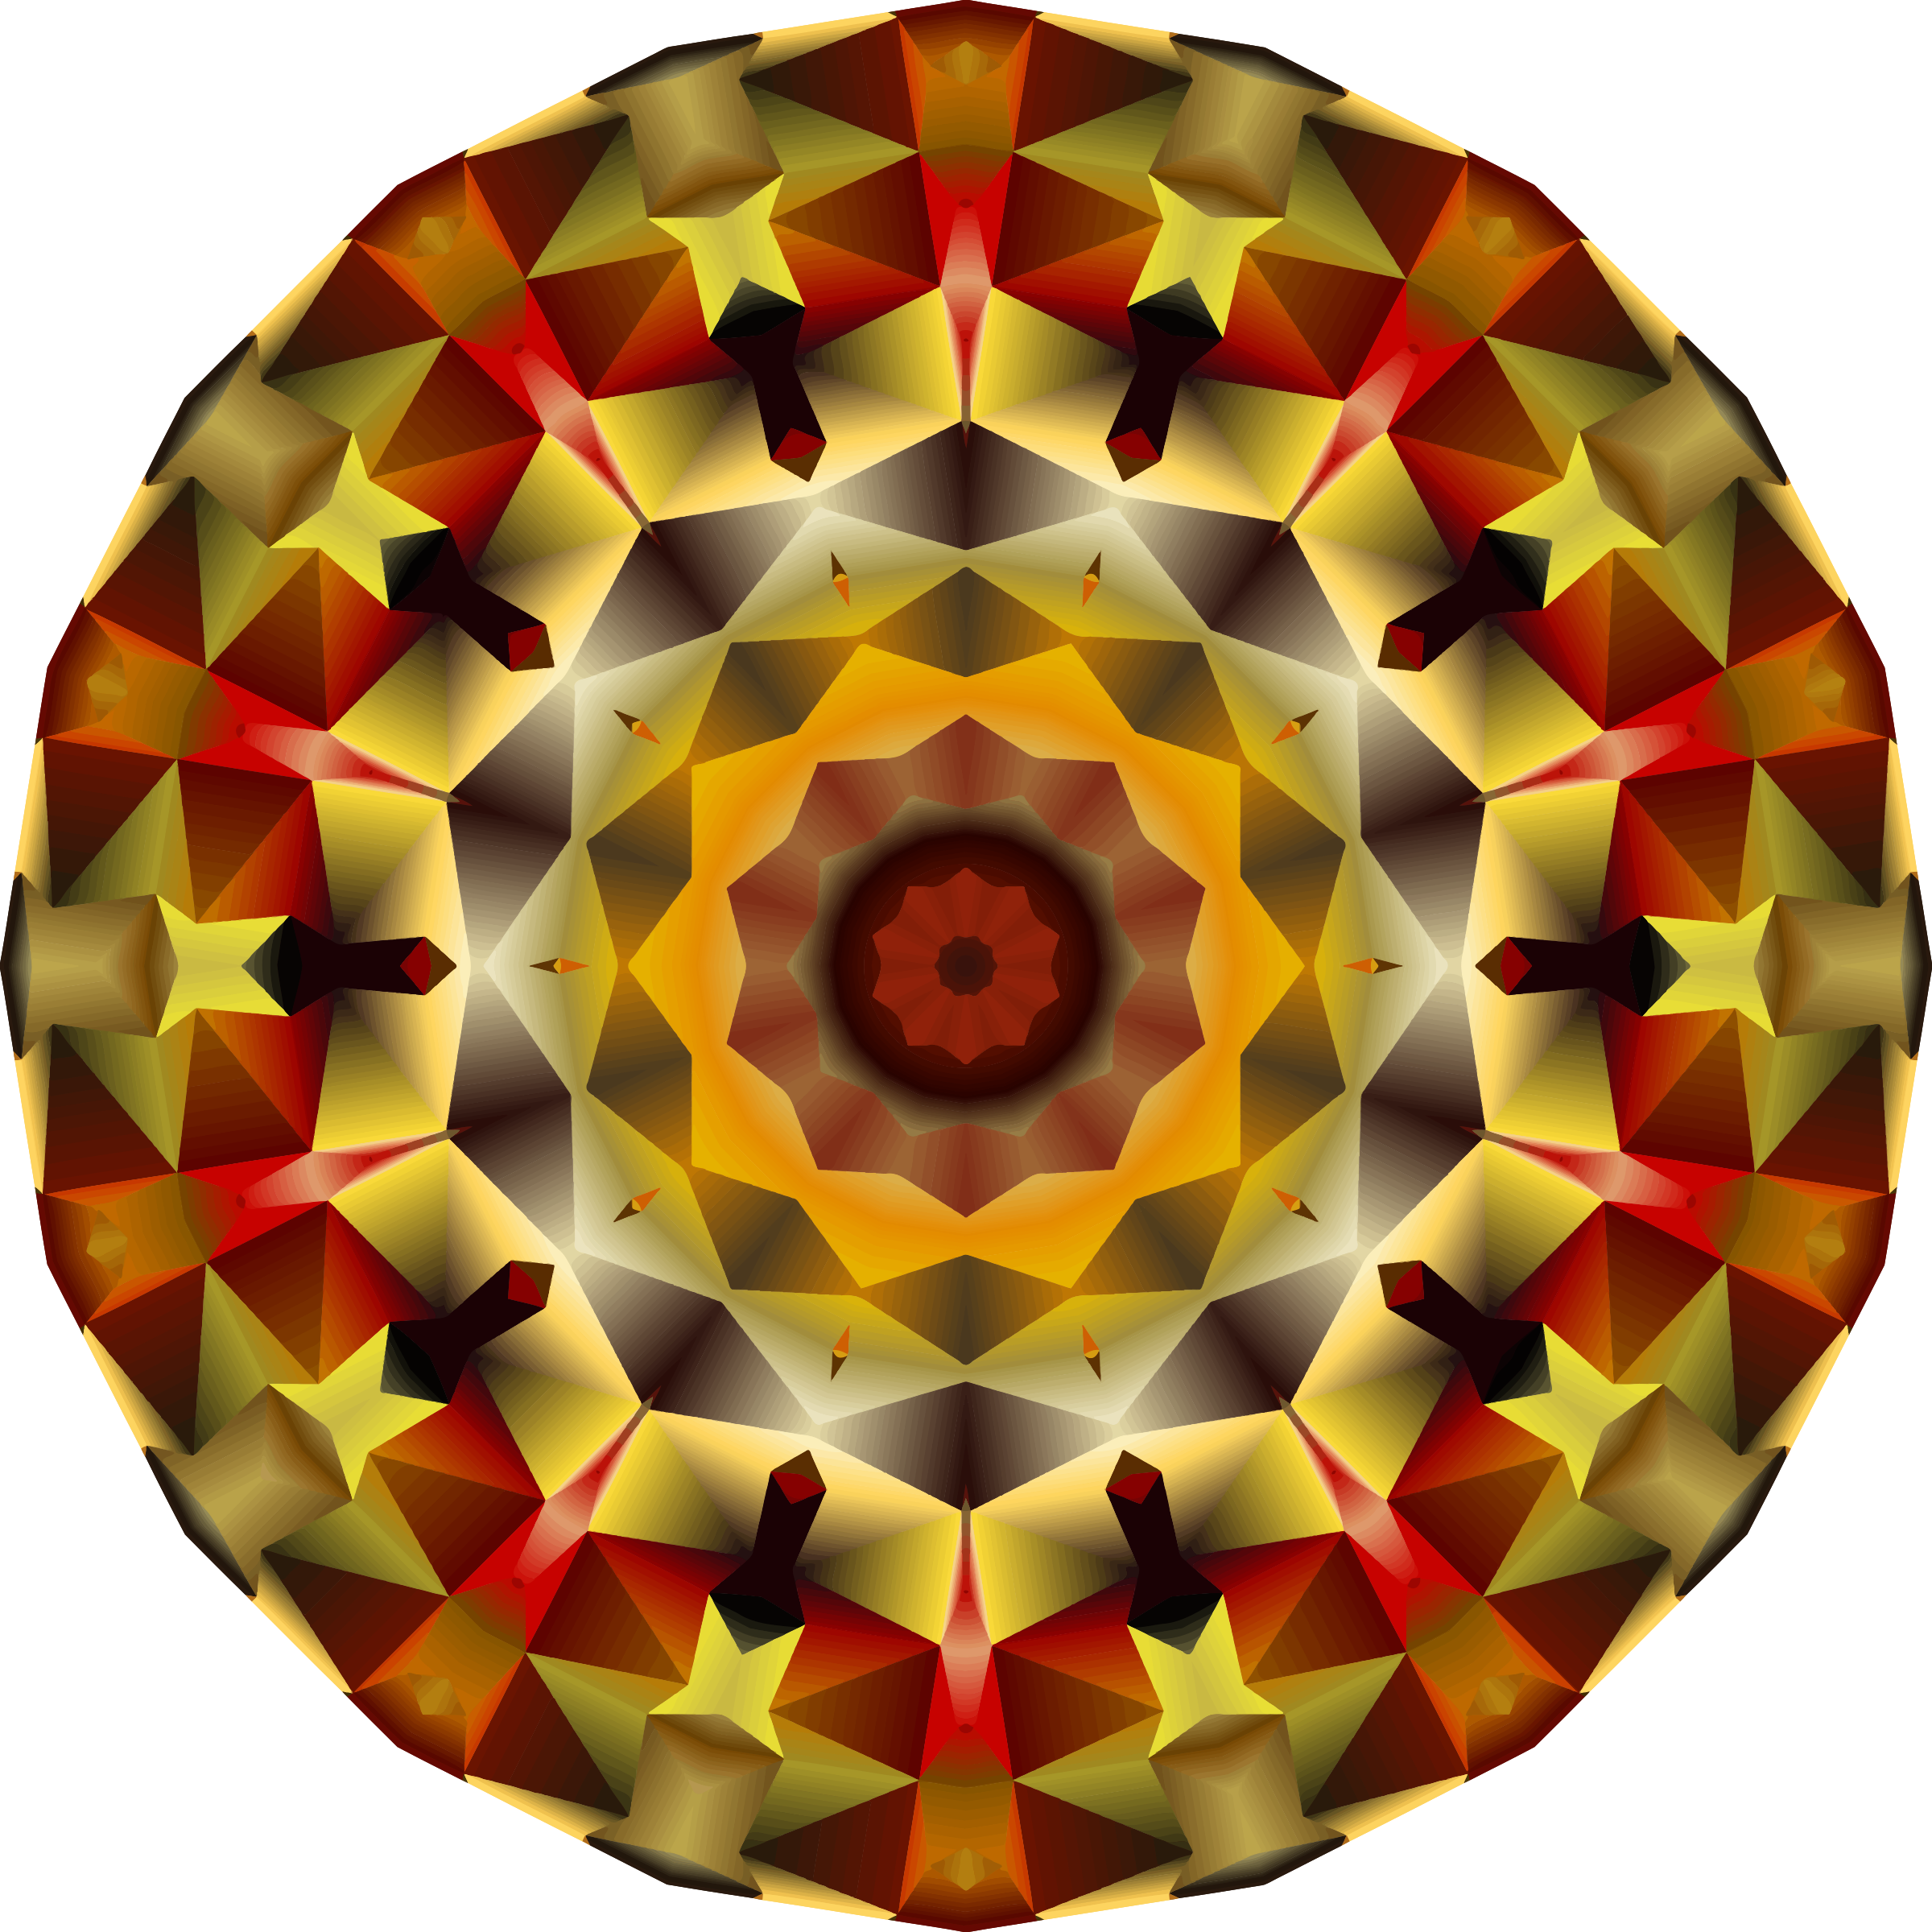 Mandala 19 by Firkin